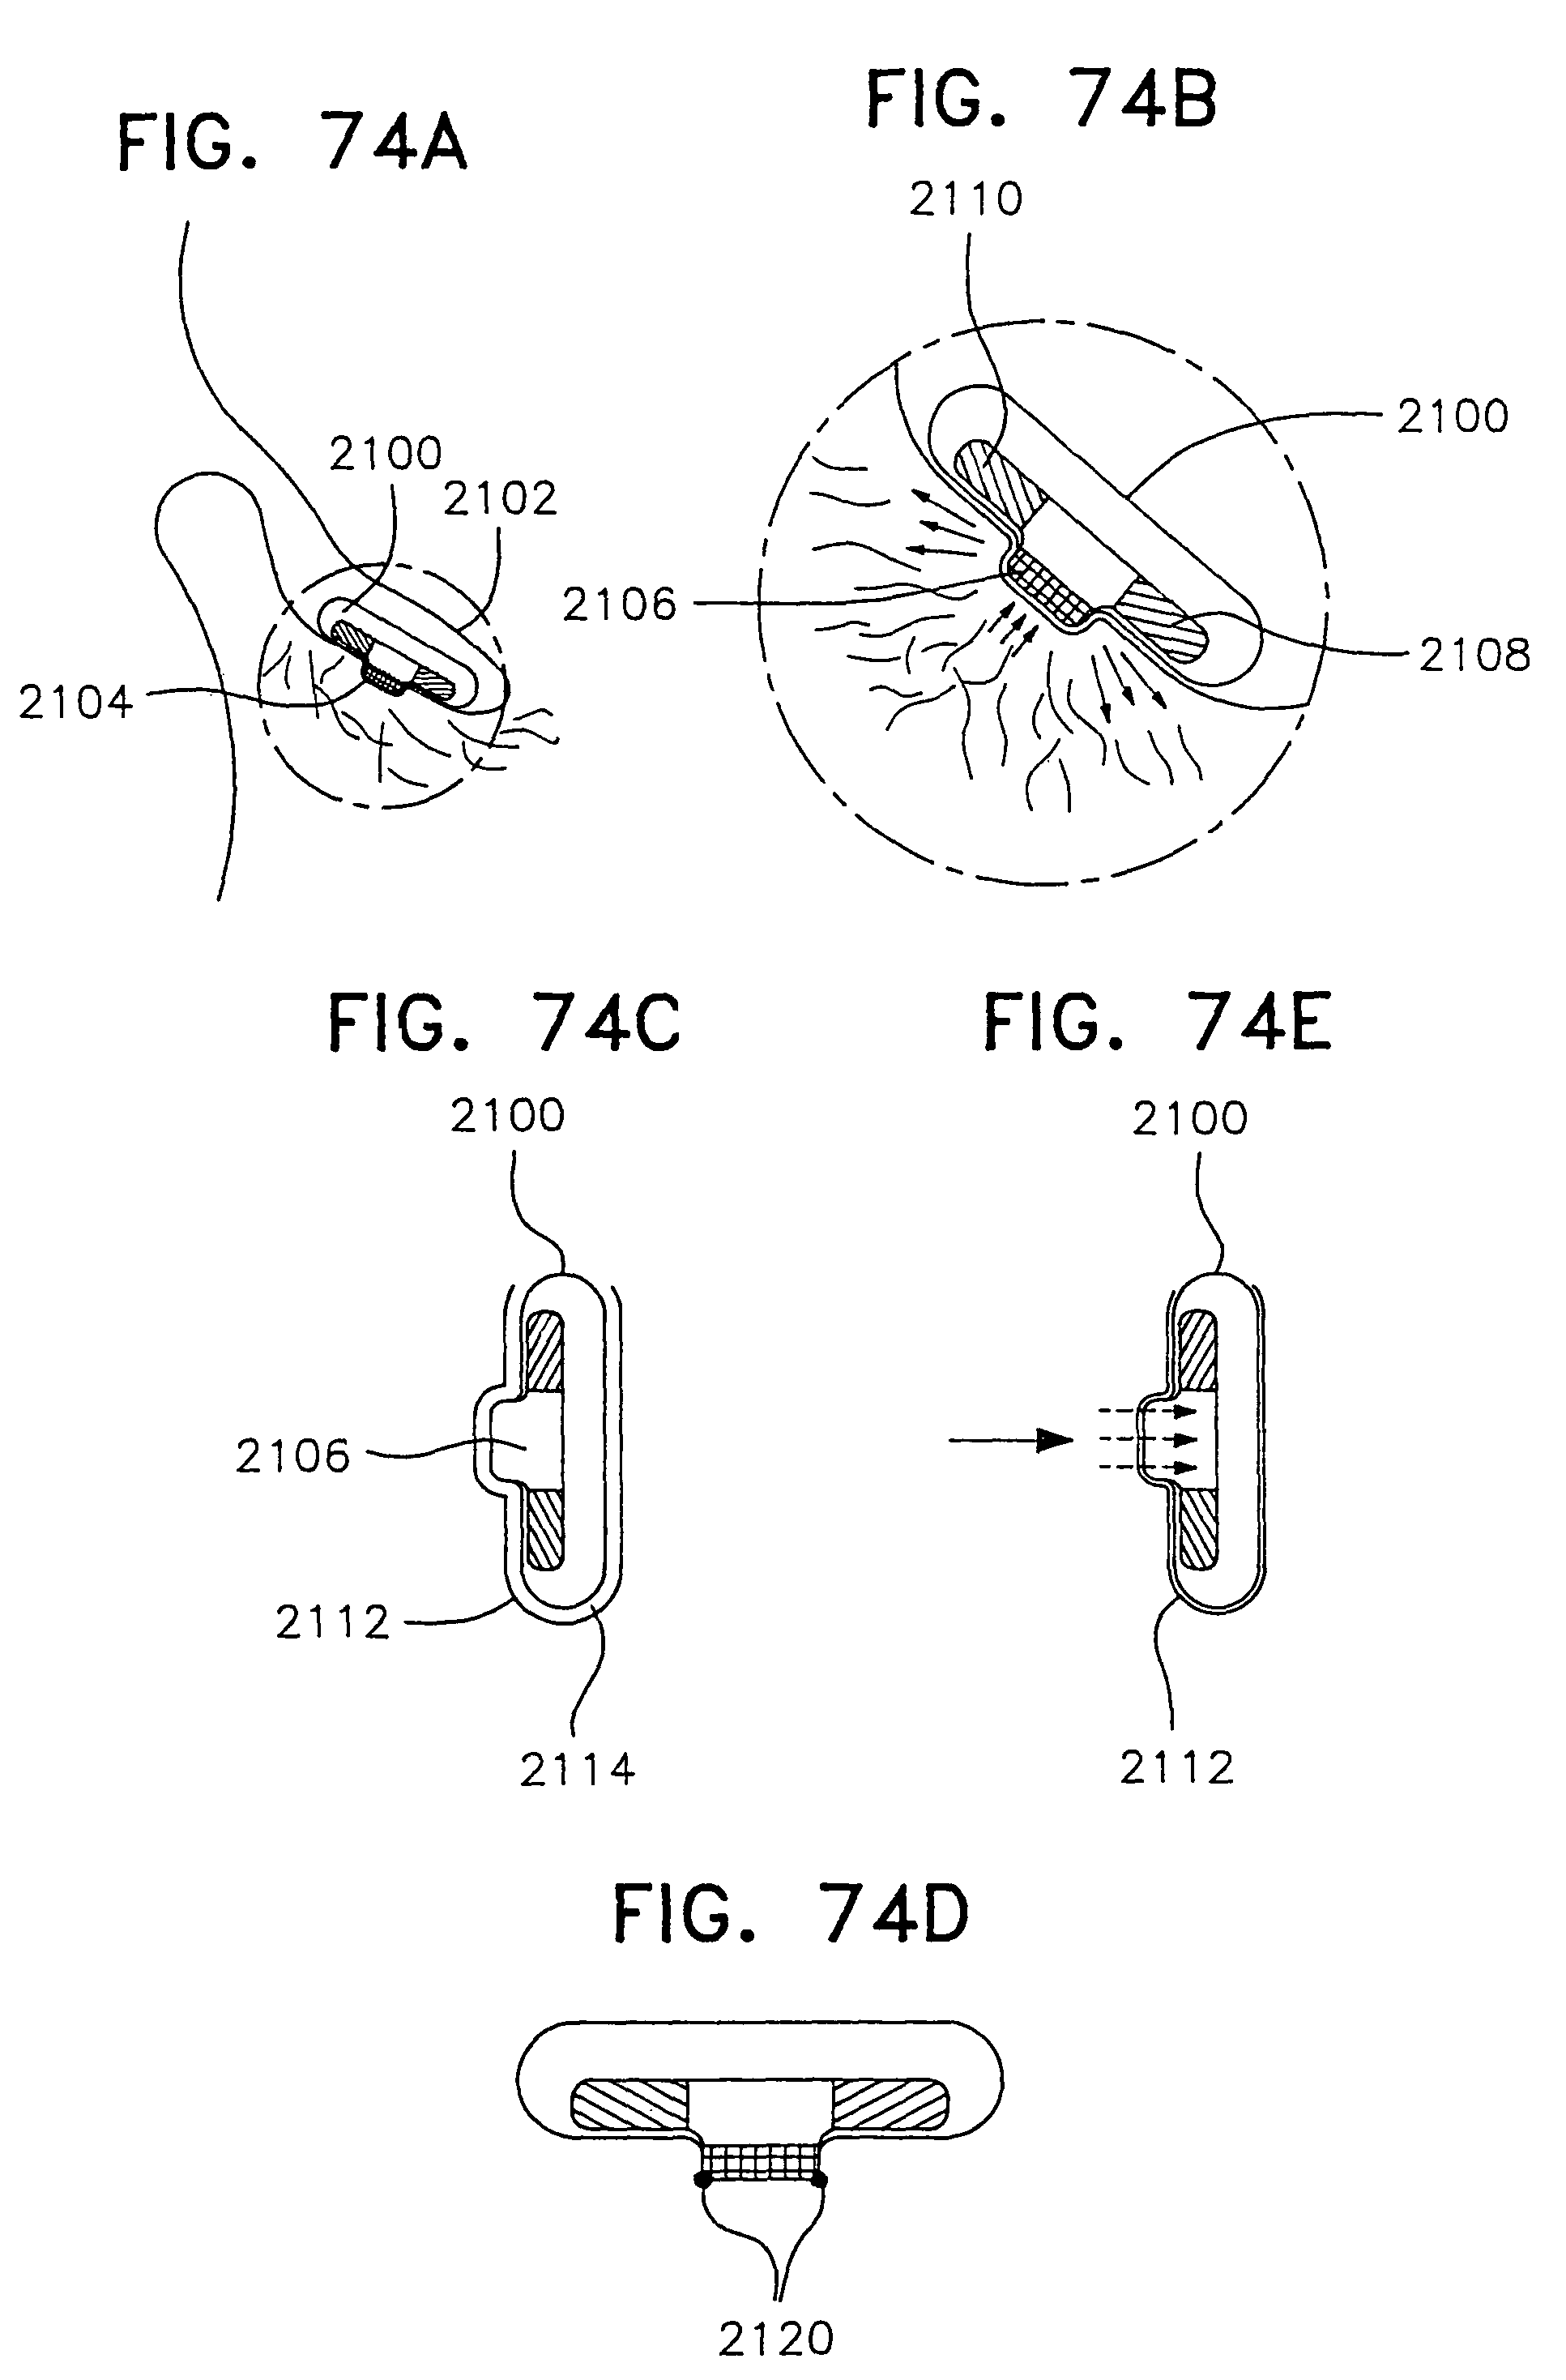 patent us 7 756 559 b2 Diagram of Fundus patent images